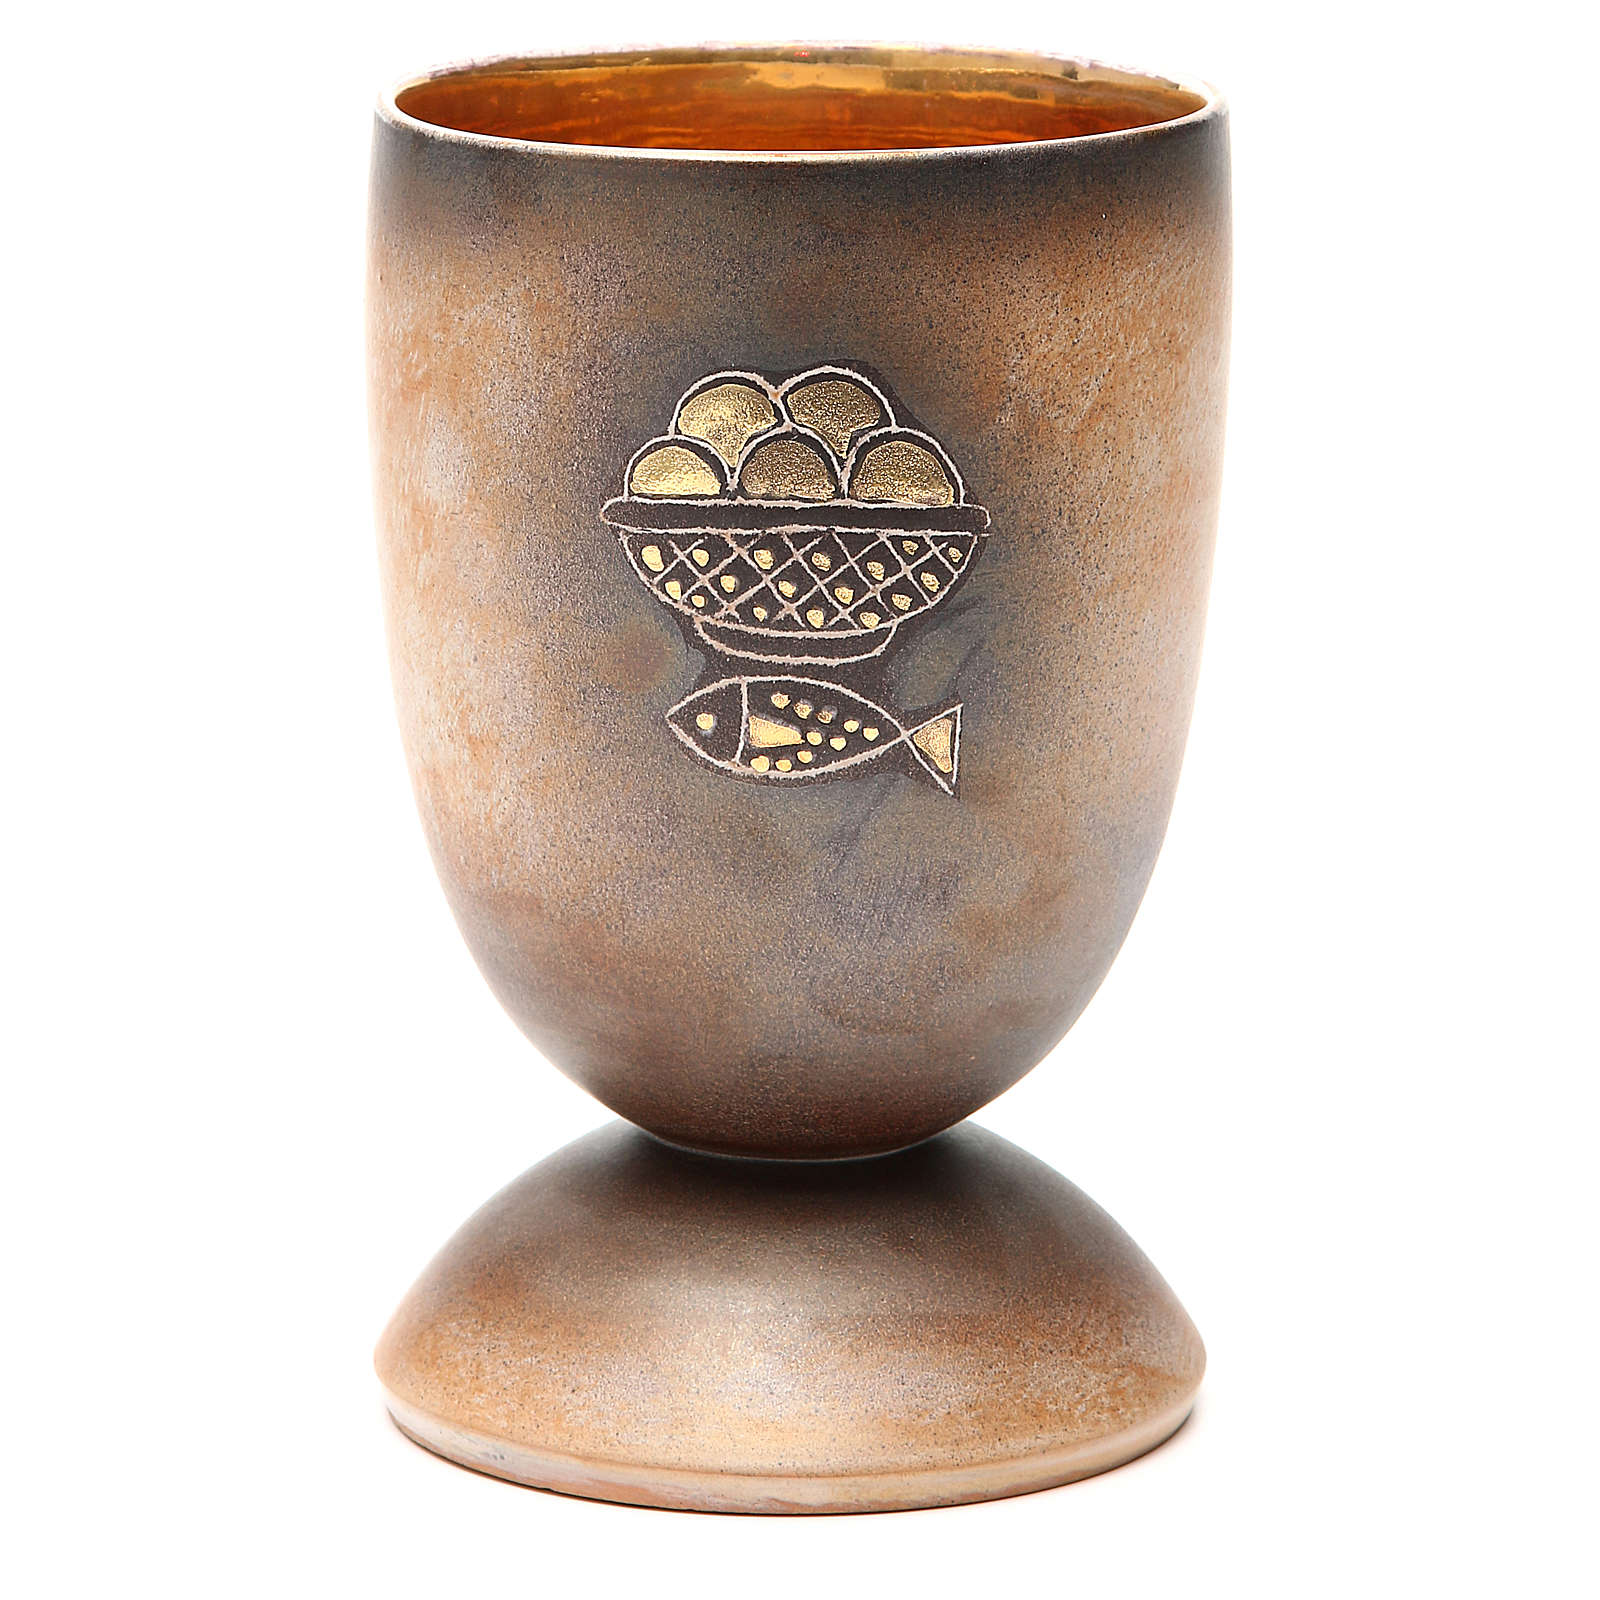 Chalice for concelebration sfish and loaves symbols, gold inside 4